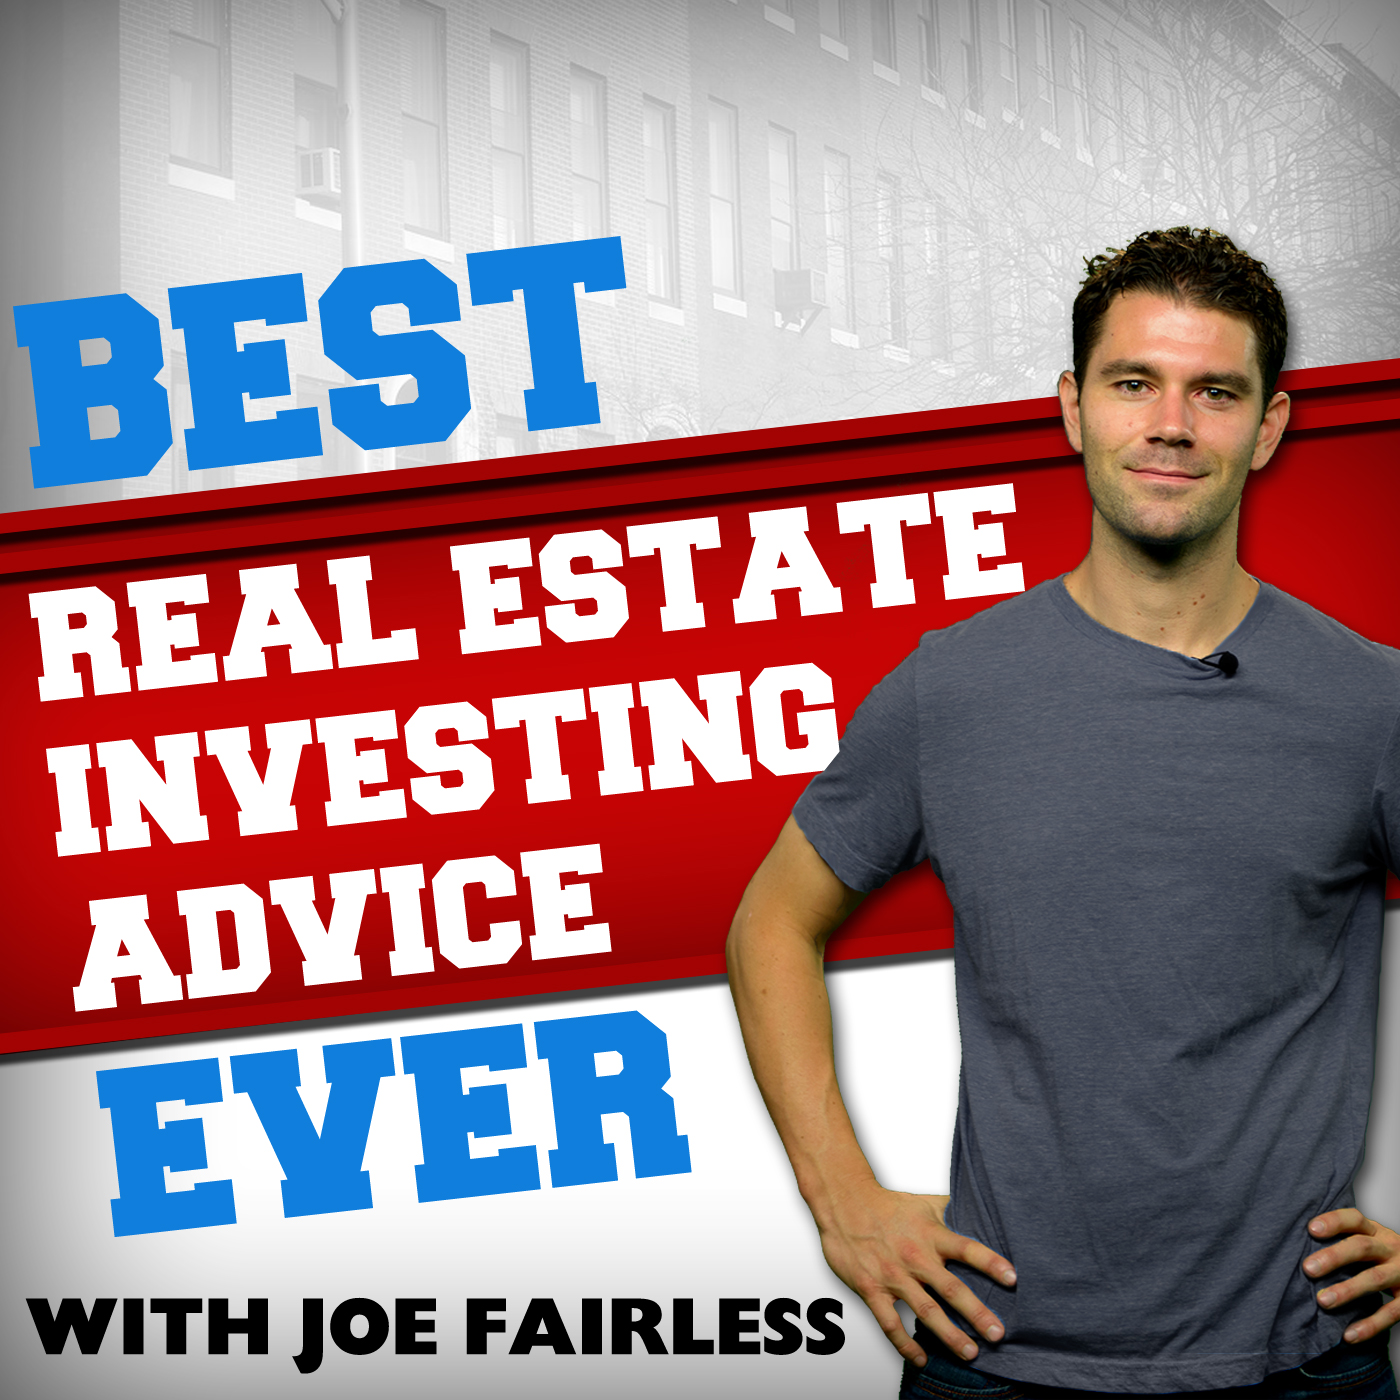 JF254: Wanna Quit Your Job to be a FULL TIME Investor? Well, You Better Think Twice...